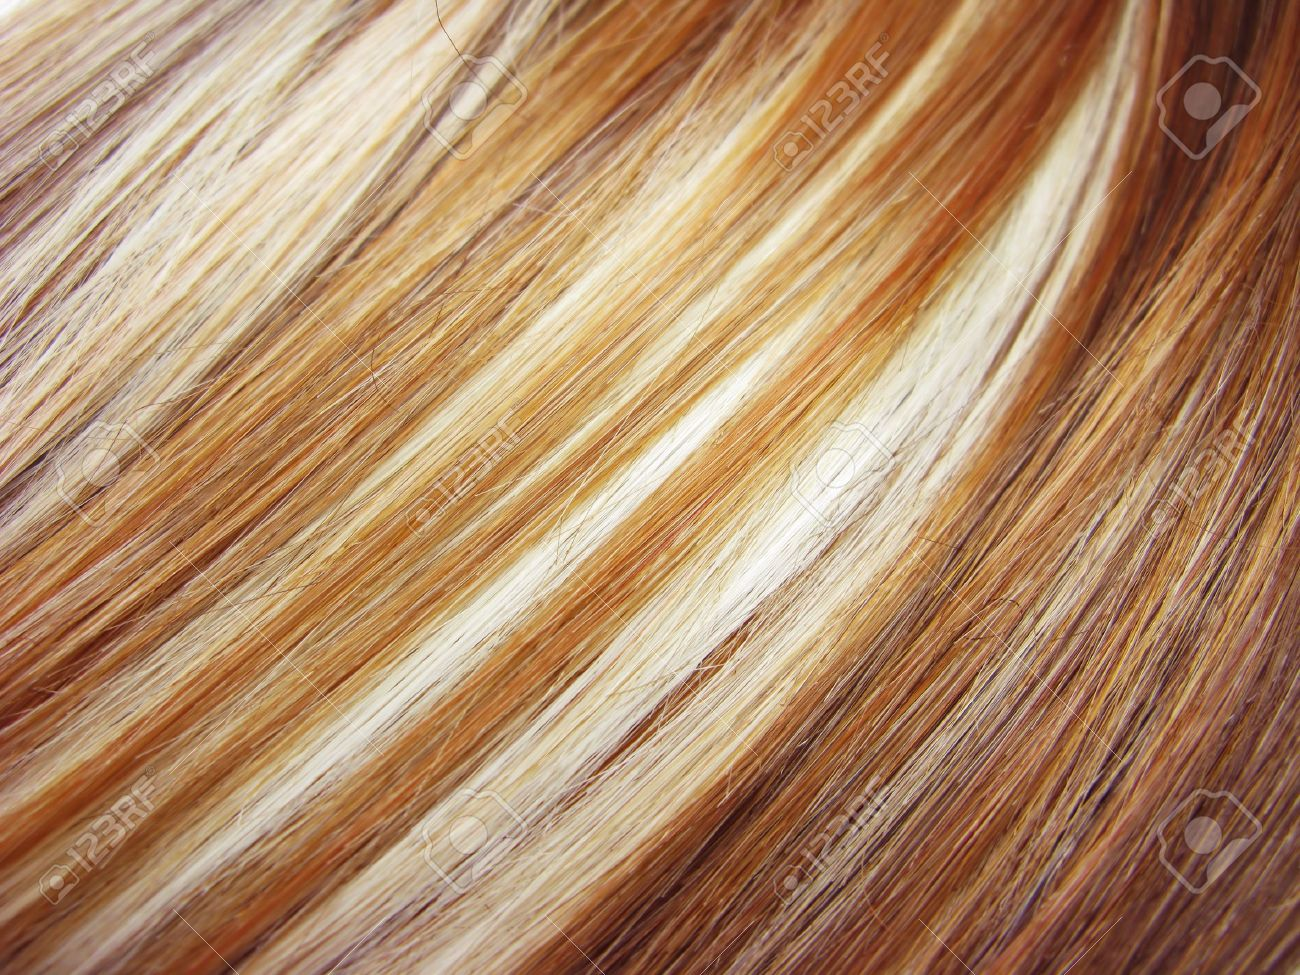 highlight hair texture abstract background Stock Photo - 12725599